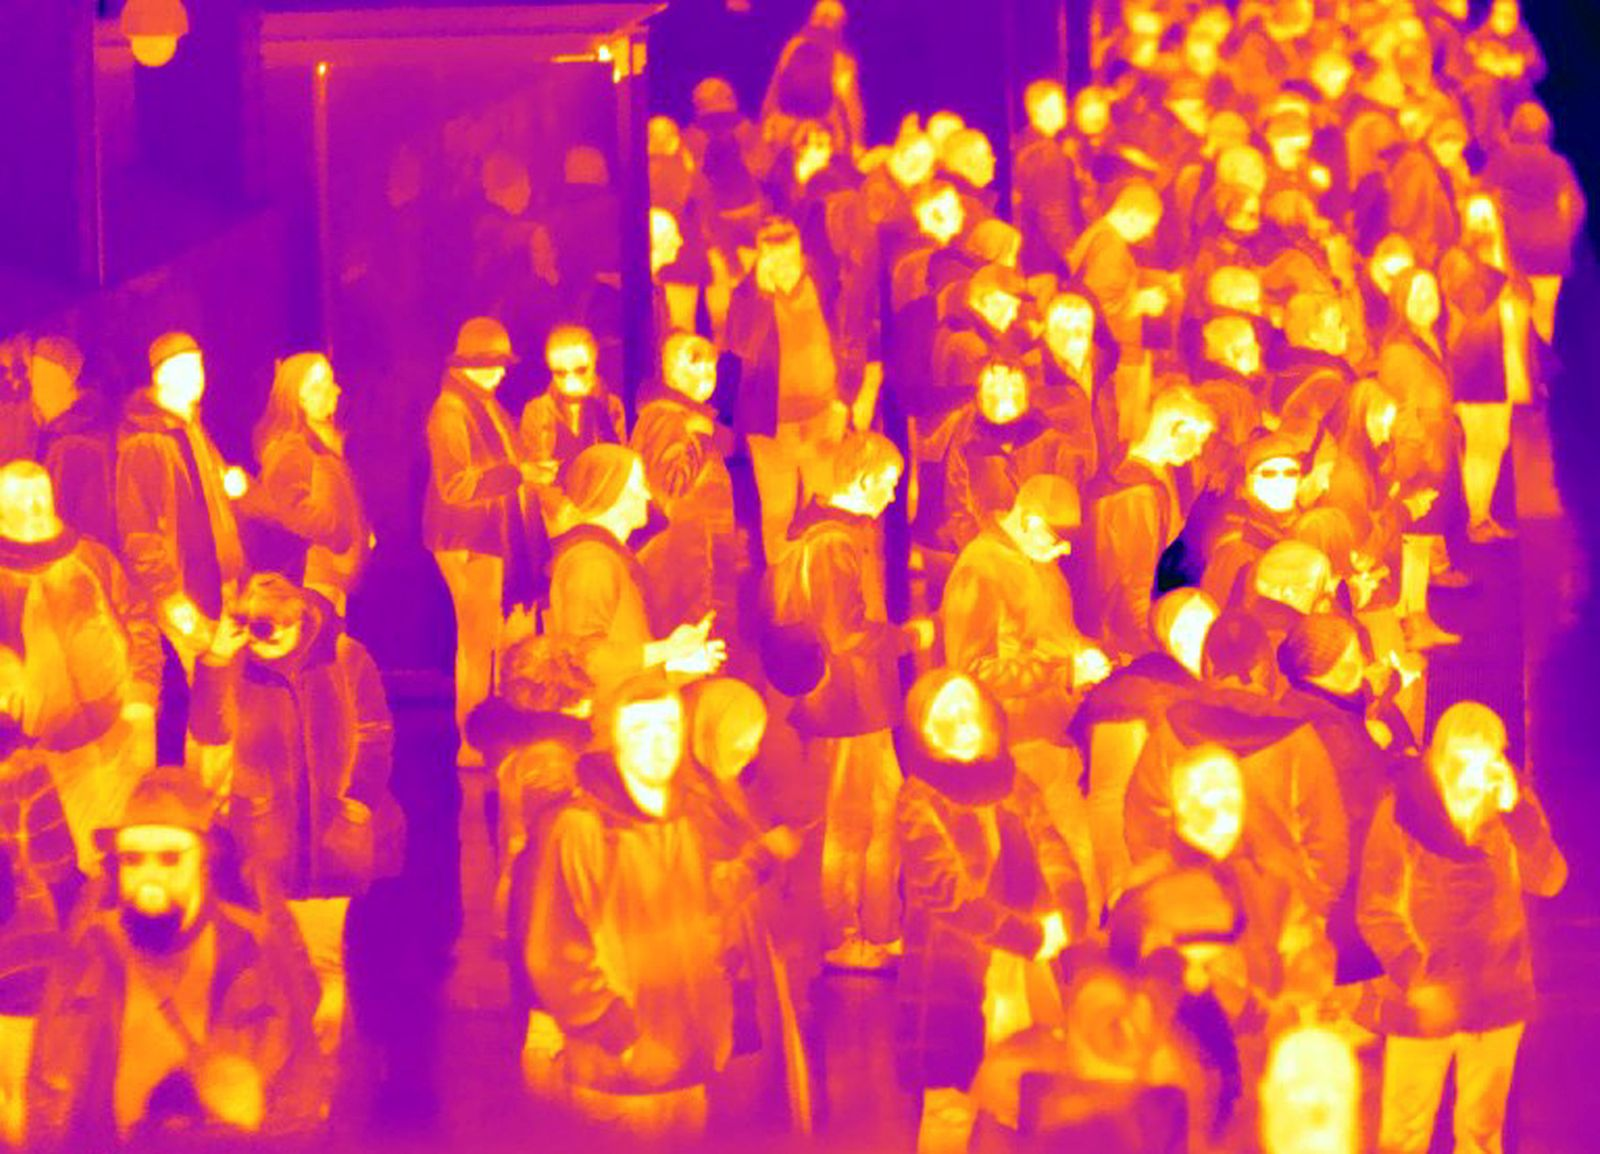 Commuters waiting for an U-Bahn underground train taken with thermal imaging camera in Berlin